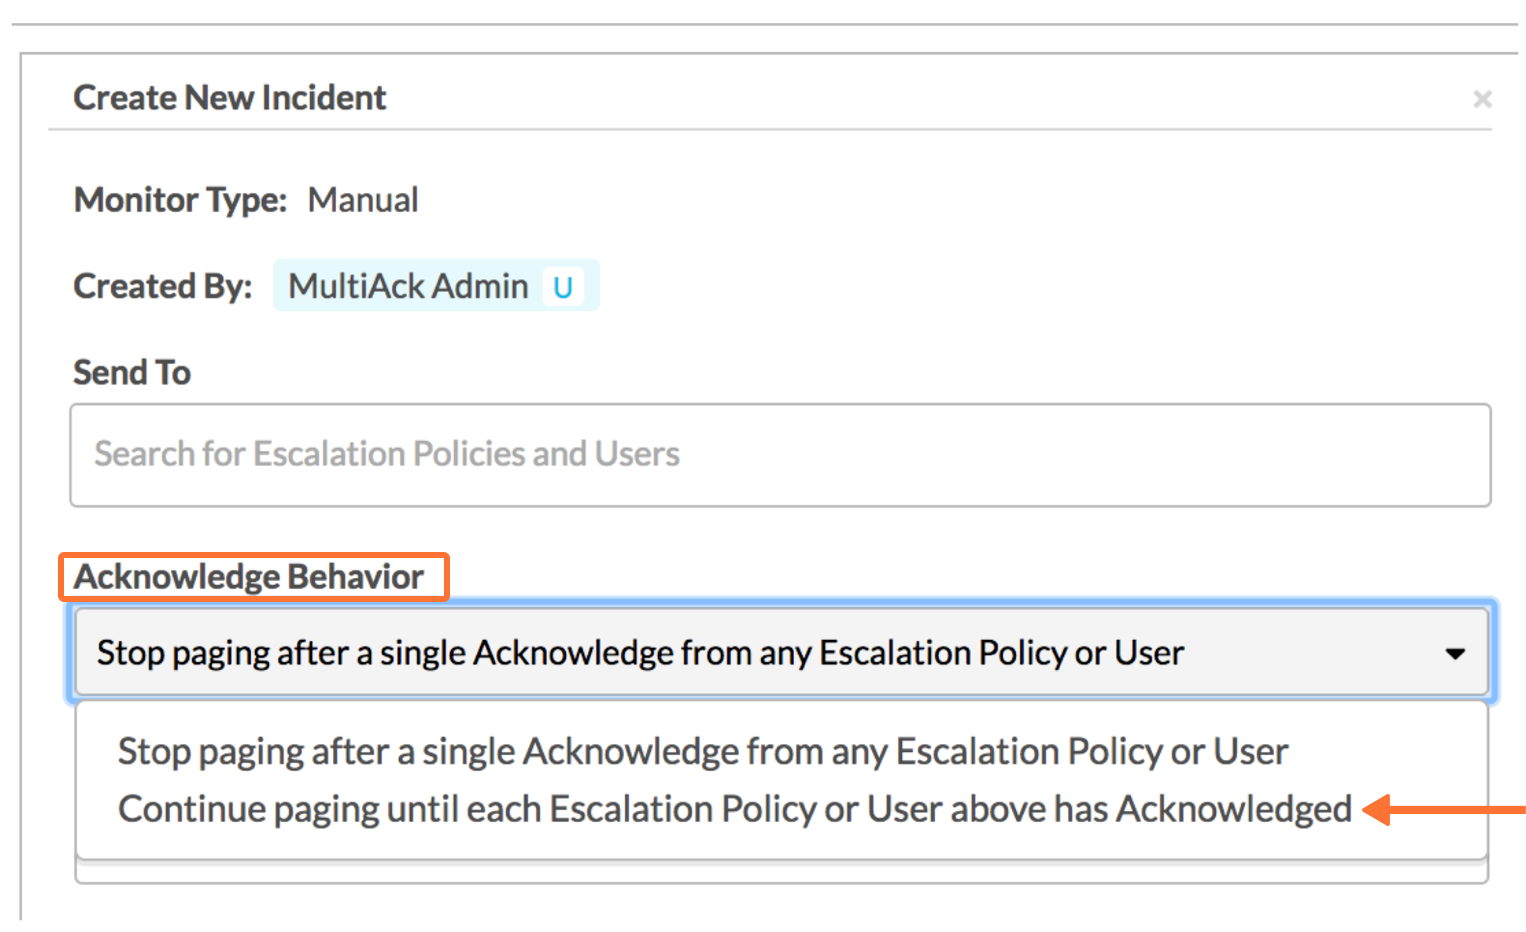 Example of Manually sending an incident to users and escalation policies in Victorops